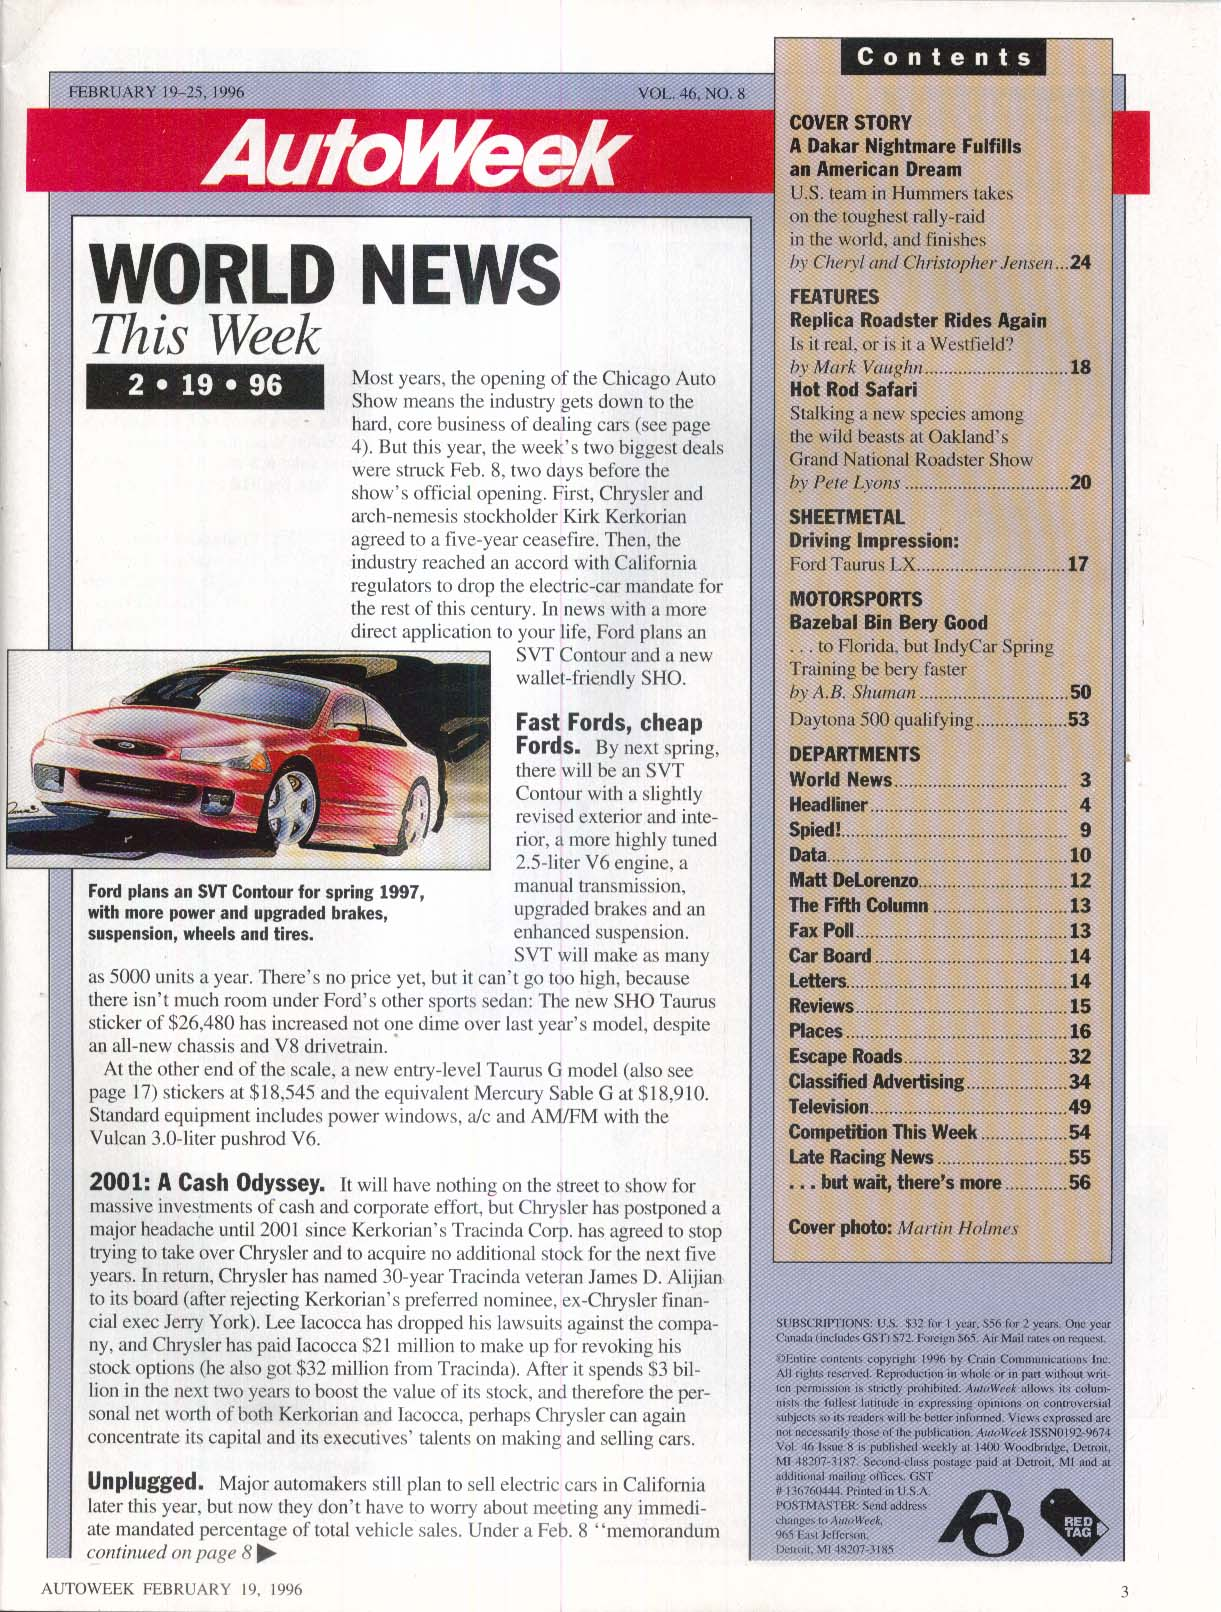 AUTO WEEK Ford Taurus LX Hummer Oakland Grand National Roadster Show 2/19 1996